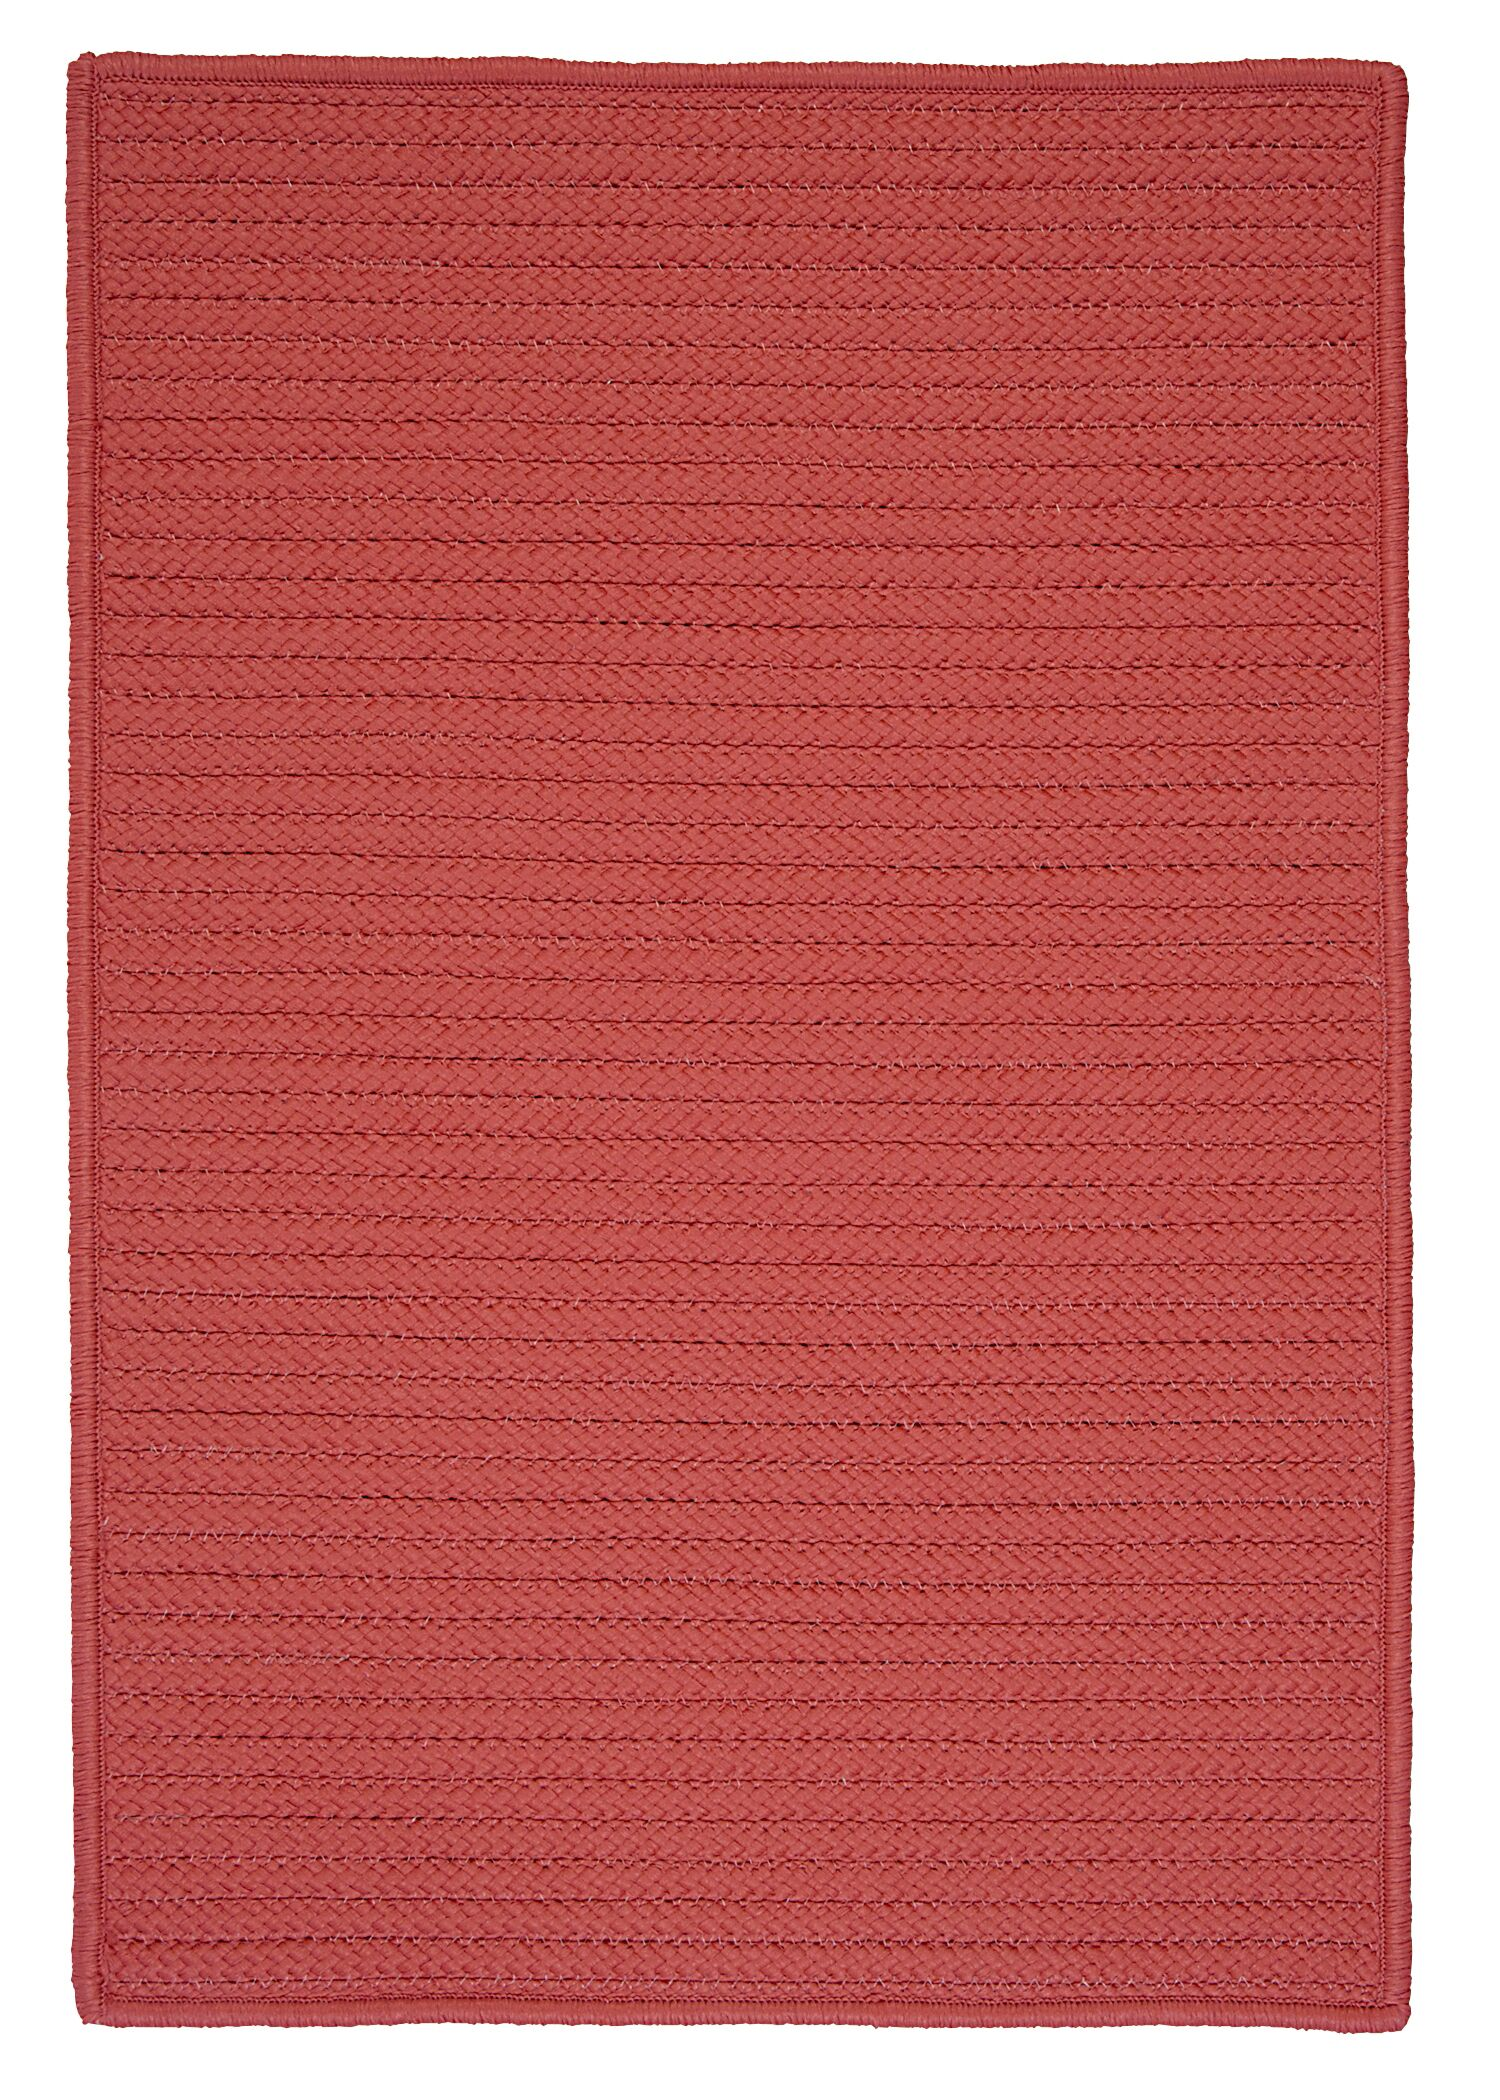 Gilmour Indoor/Outdoor Area Rug Rug Size: Rectangle 4' x 6'